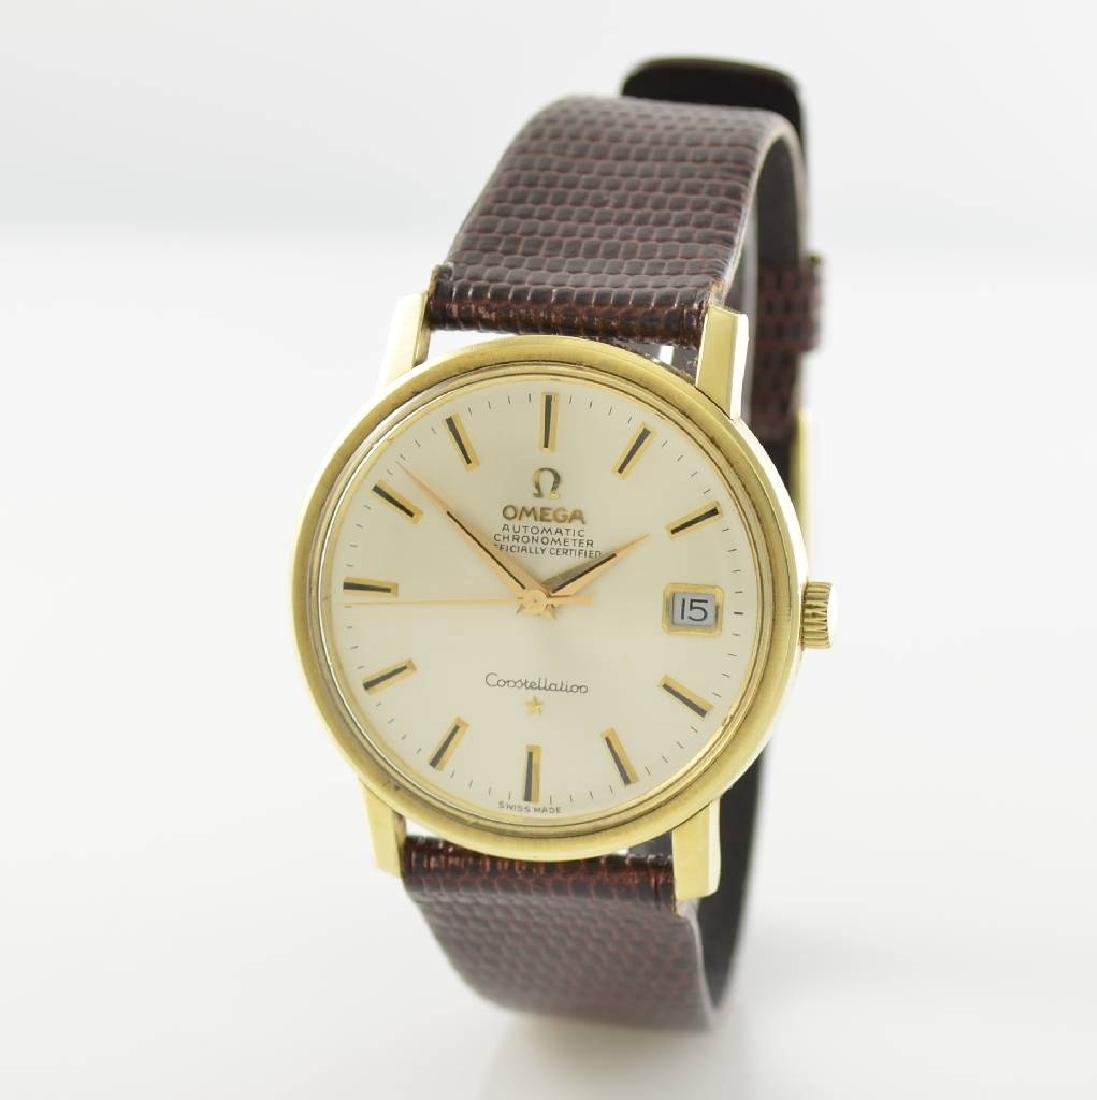 OMEGA Constellation gents wristwatch - 3